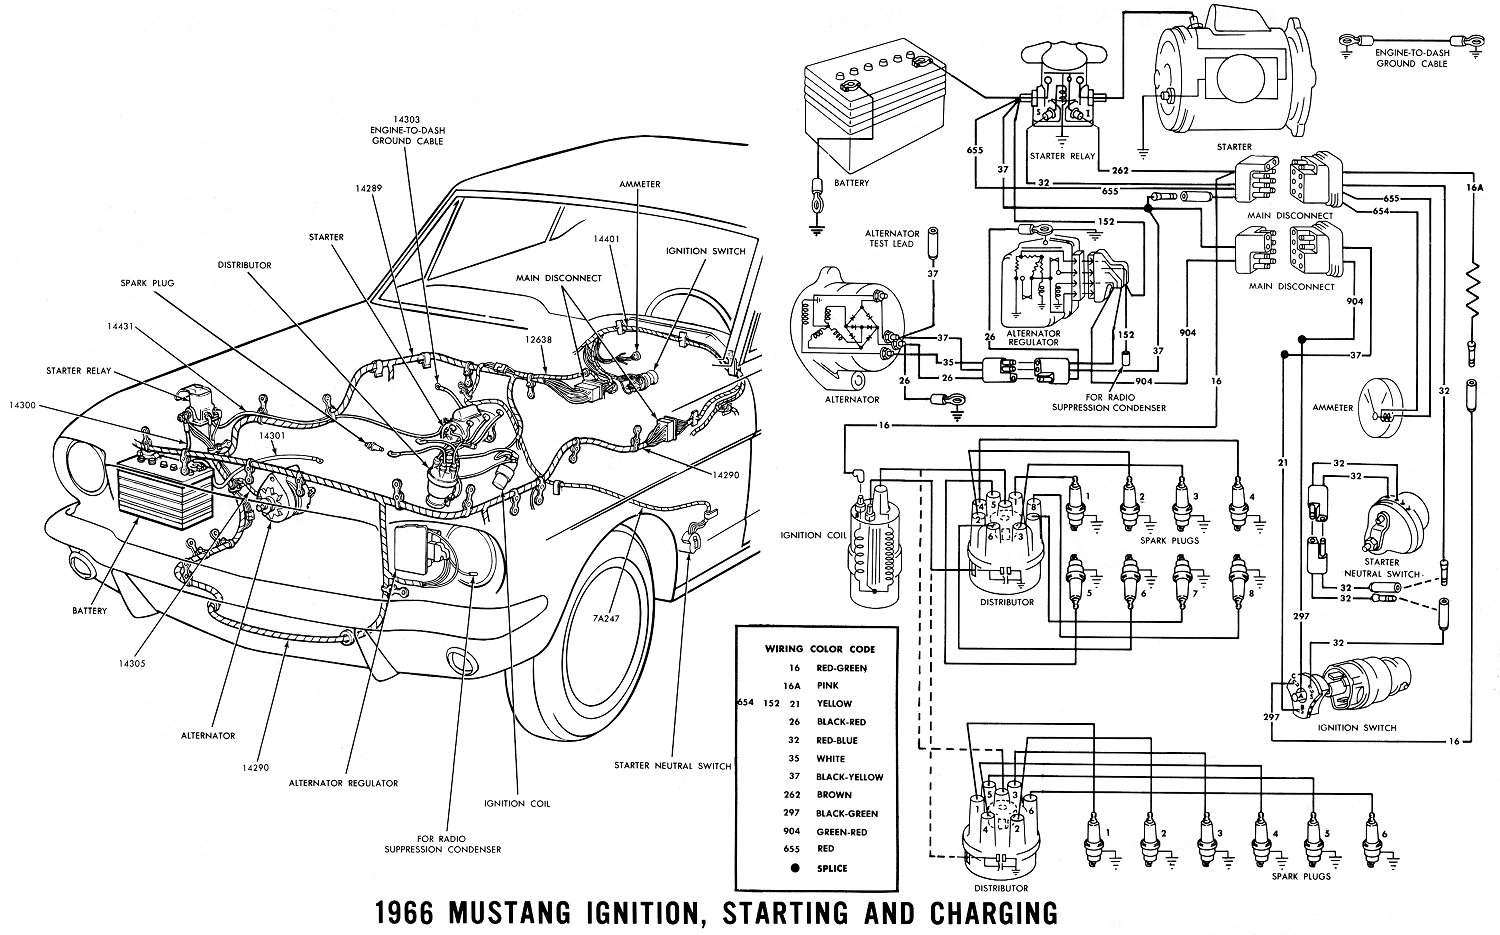 66ignit 1966 mustang wiring diagrams average joe restoration 66 mustang ignition wiring diagram at soozxer.org